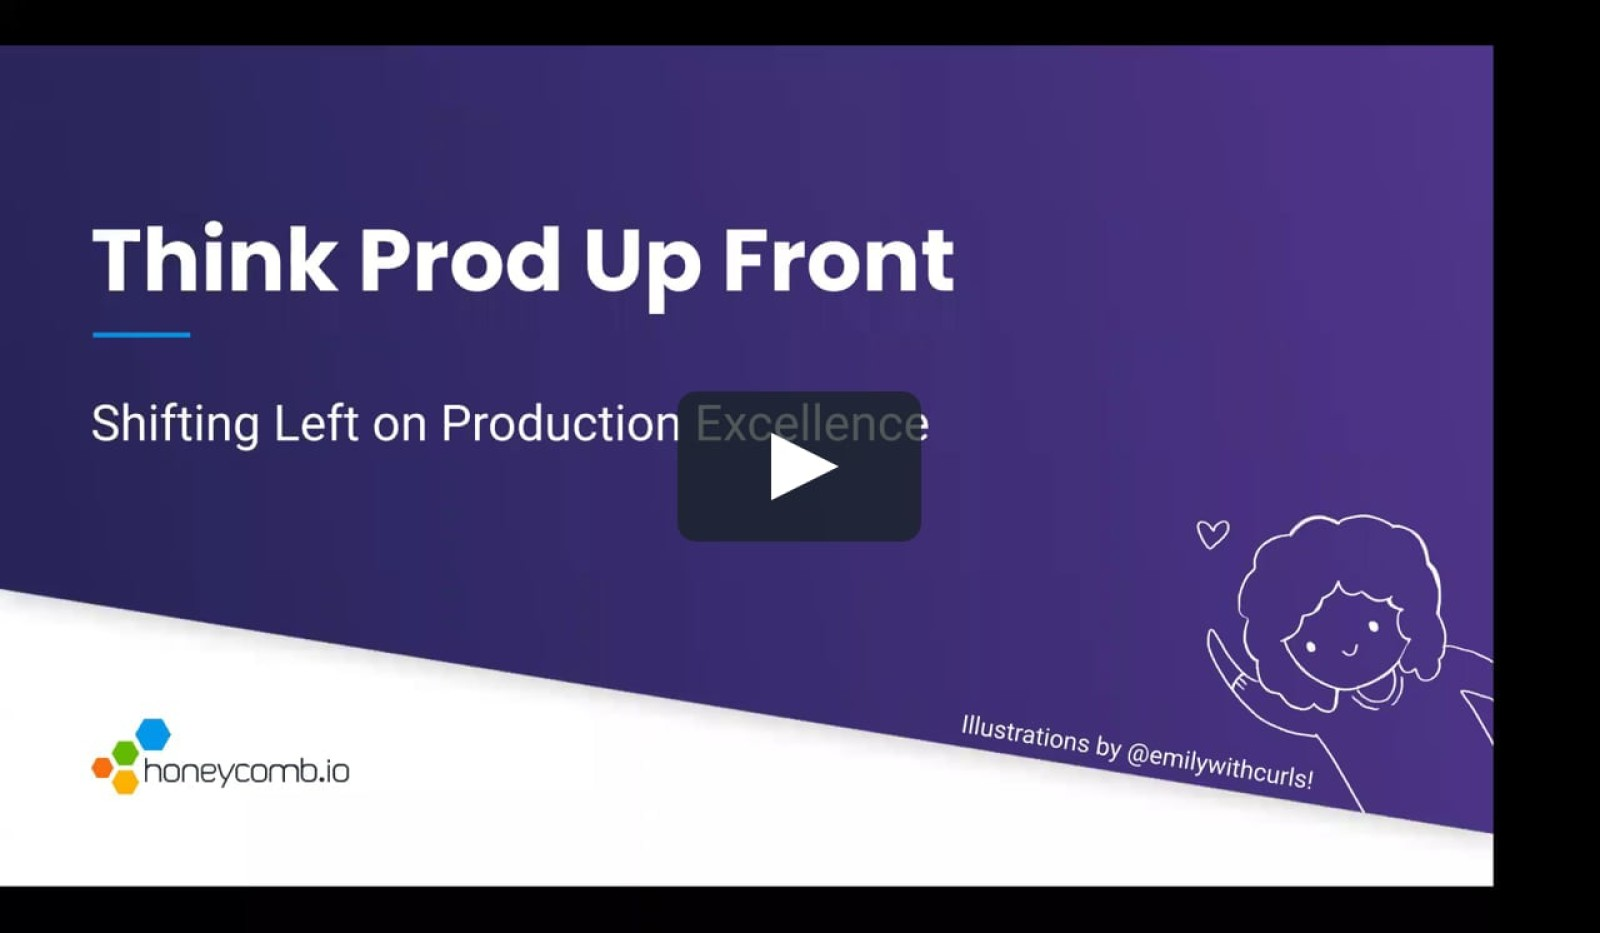 Think Prod Up Front: Shifting Left on Production Excellence